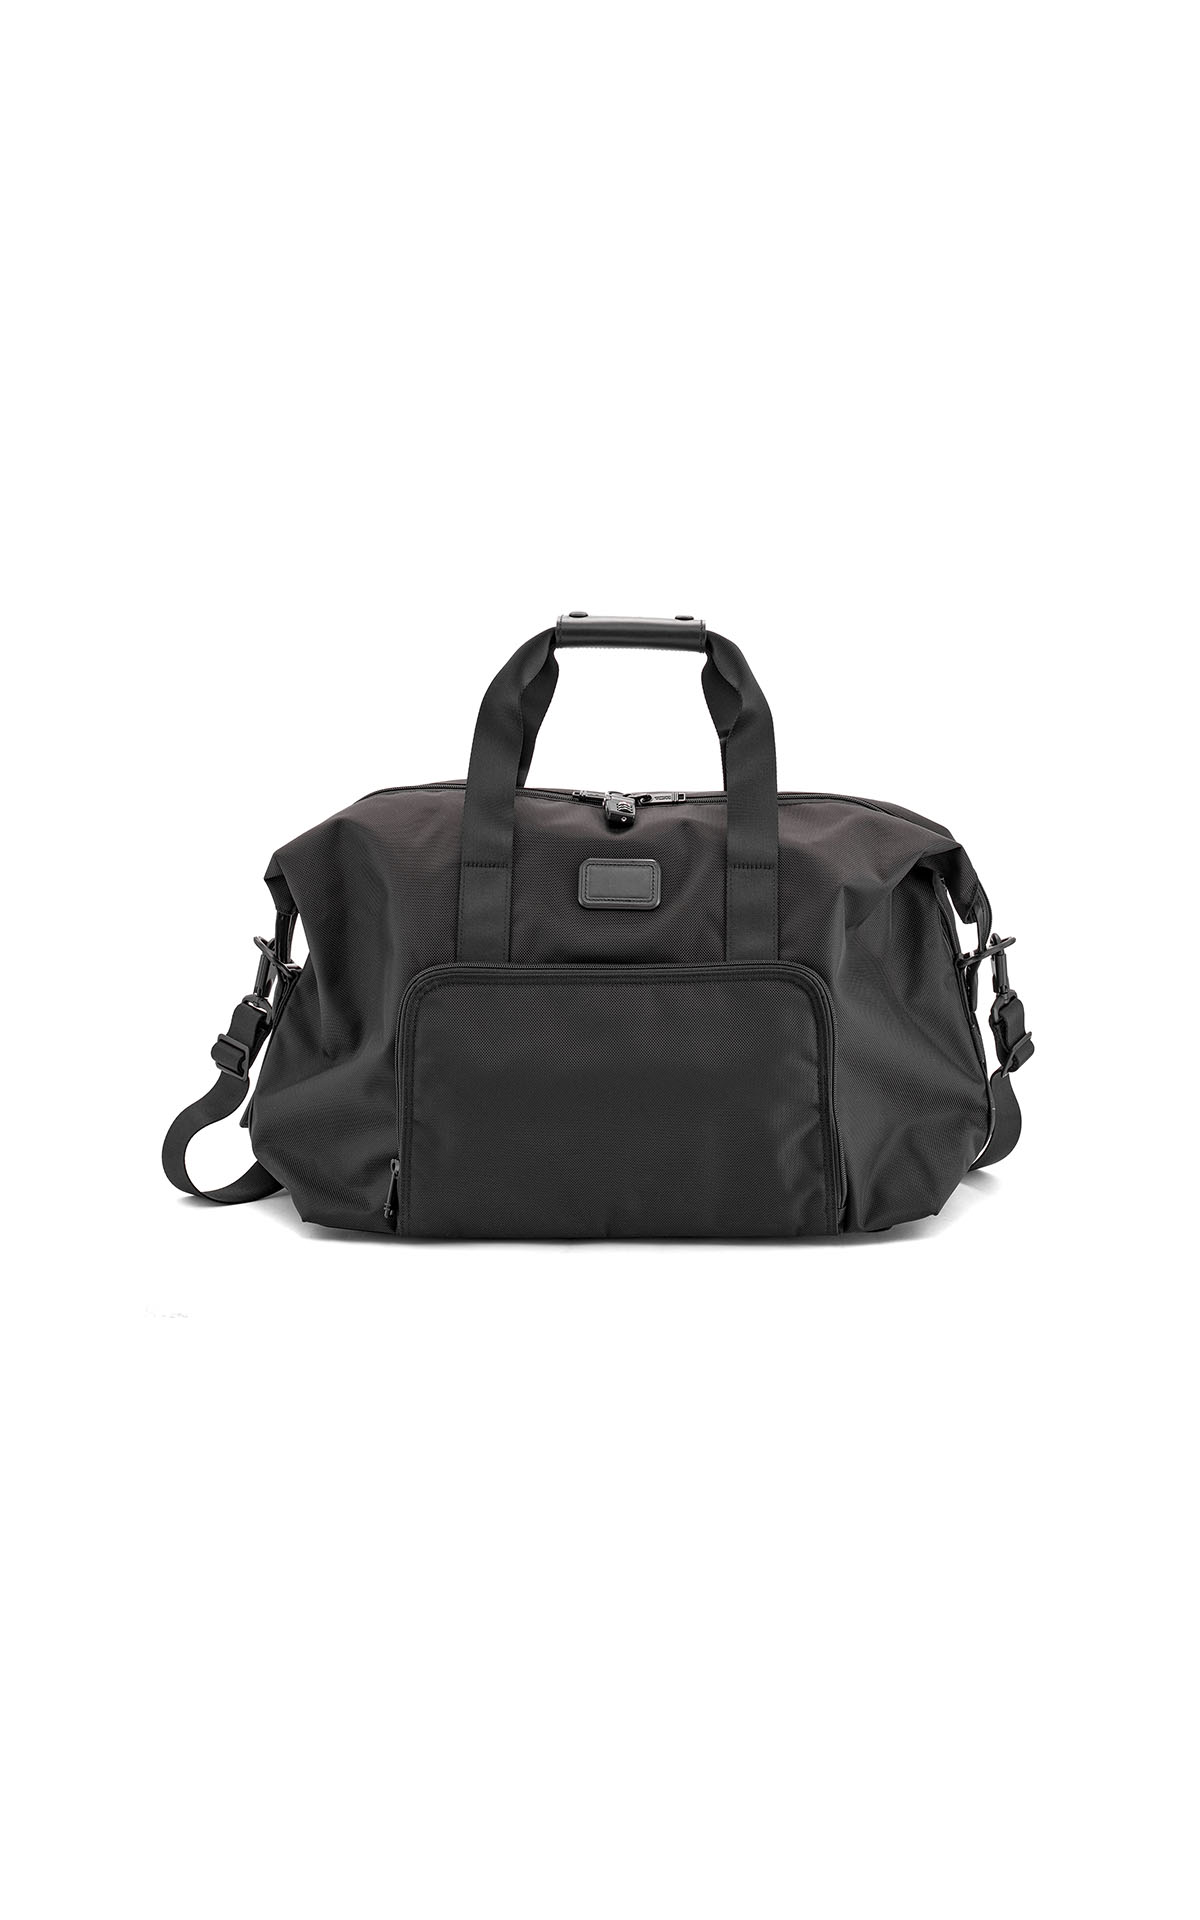 Tumi Soft Travel Satchel